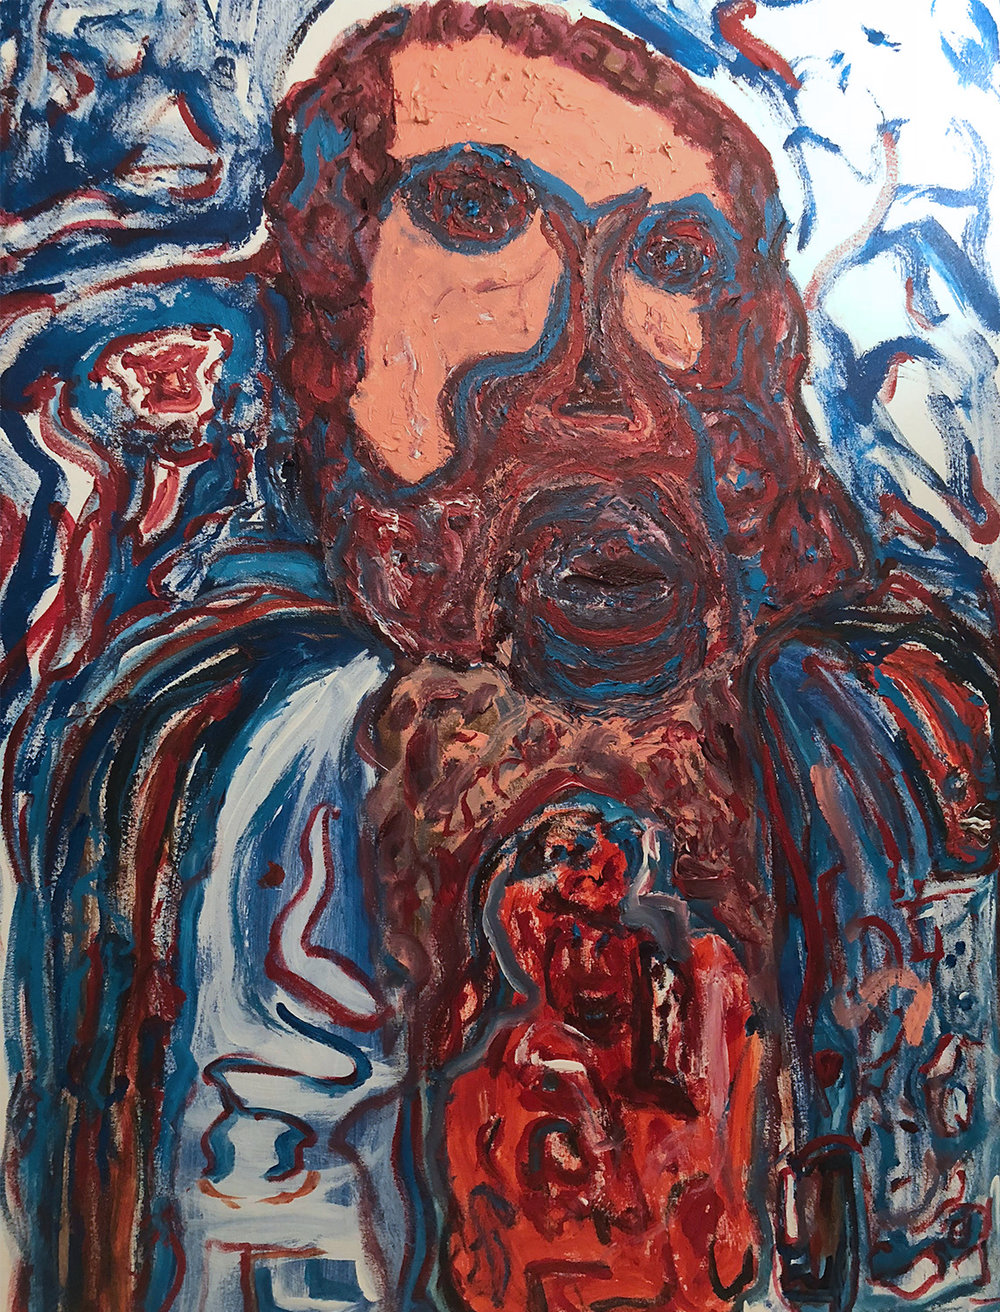 Yvette Kraft.  The Very Charitable Mr. Link . Acrylic on Canvas. 36 in x 48 in. 2017